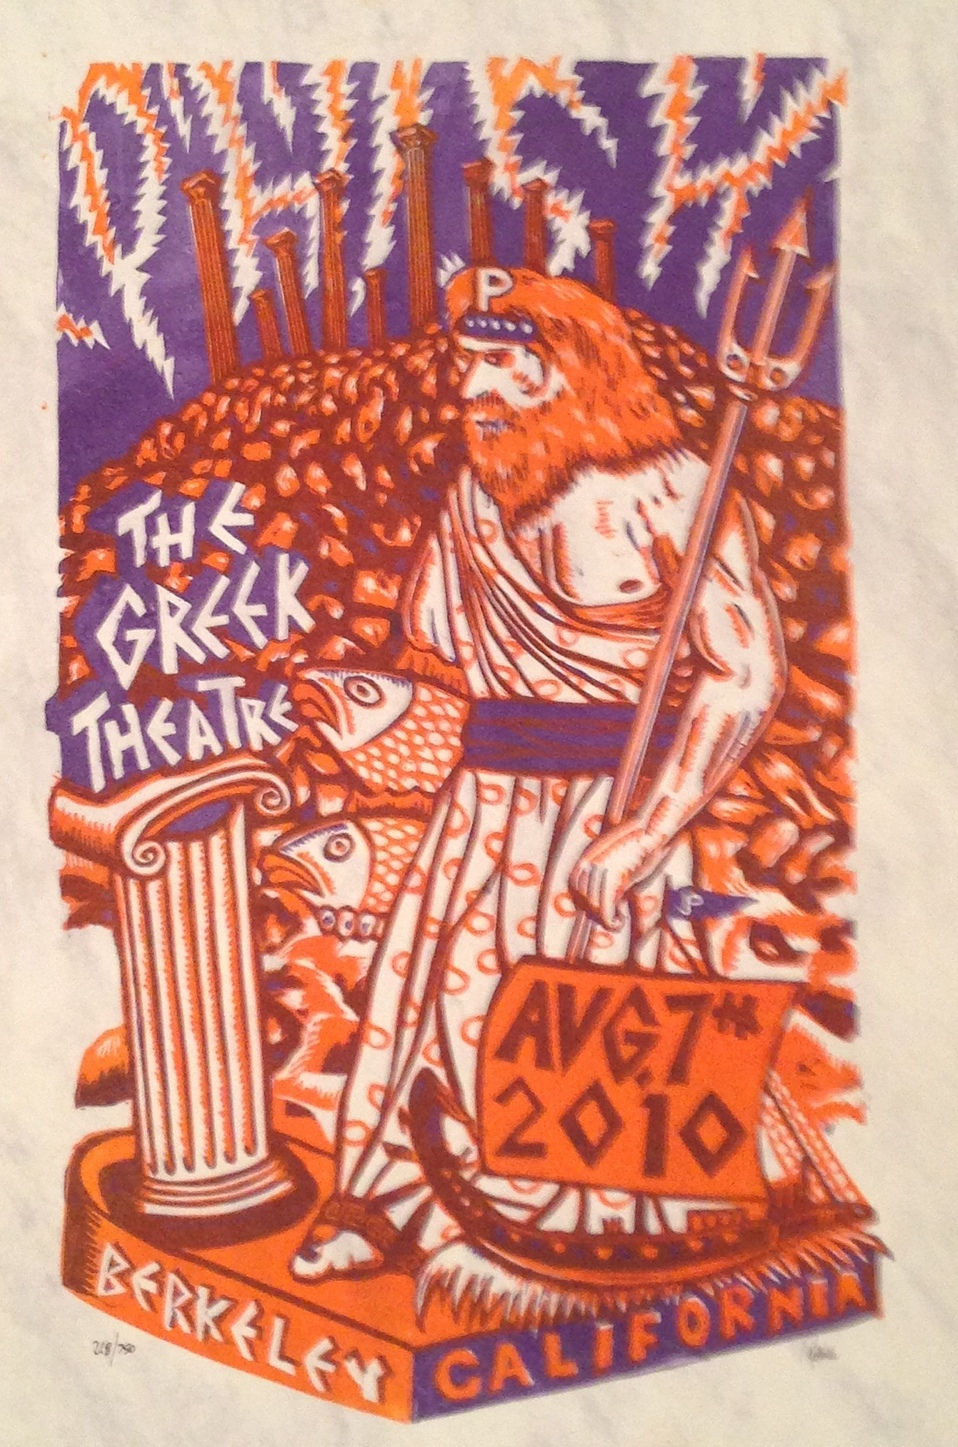 JIM POLLOCK  |  Phish - Greek Theatre   Linoleum Relief | Edition of 750 | 14 x 21 | Signed and Numbered